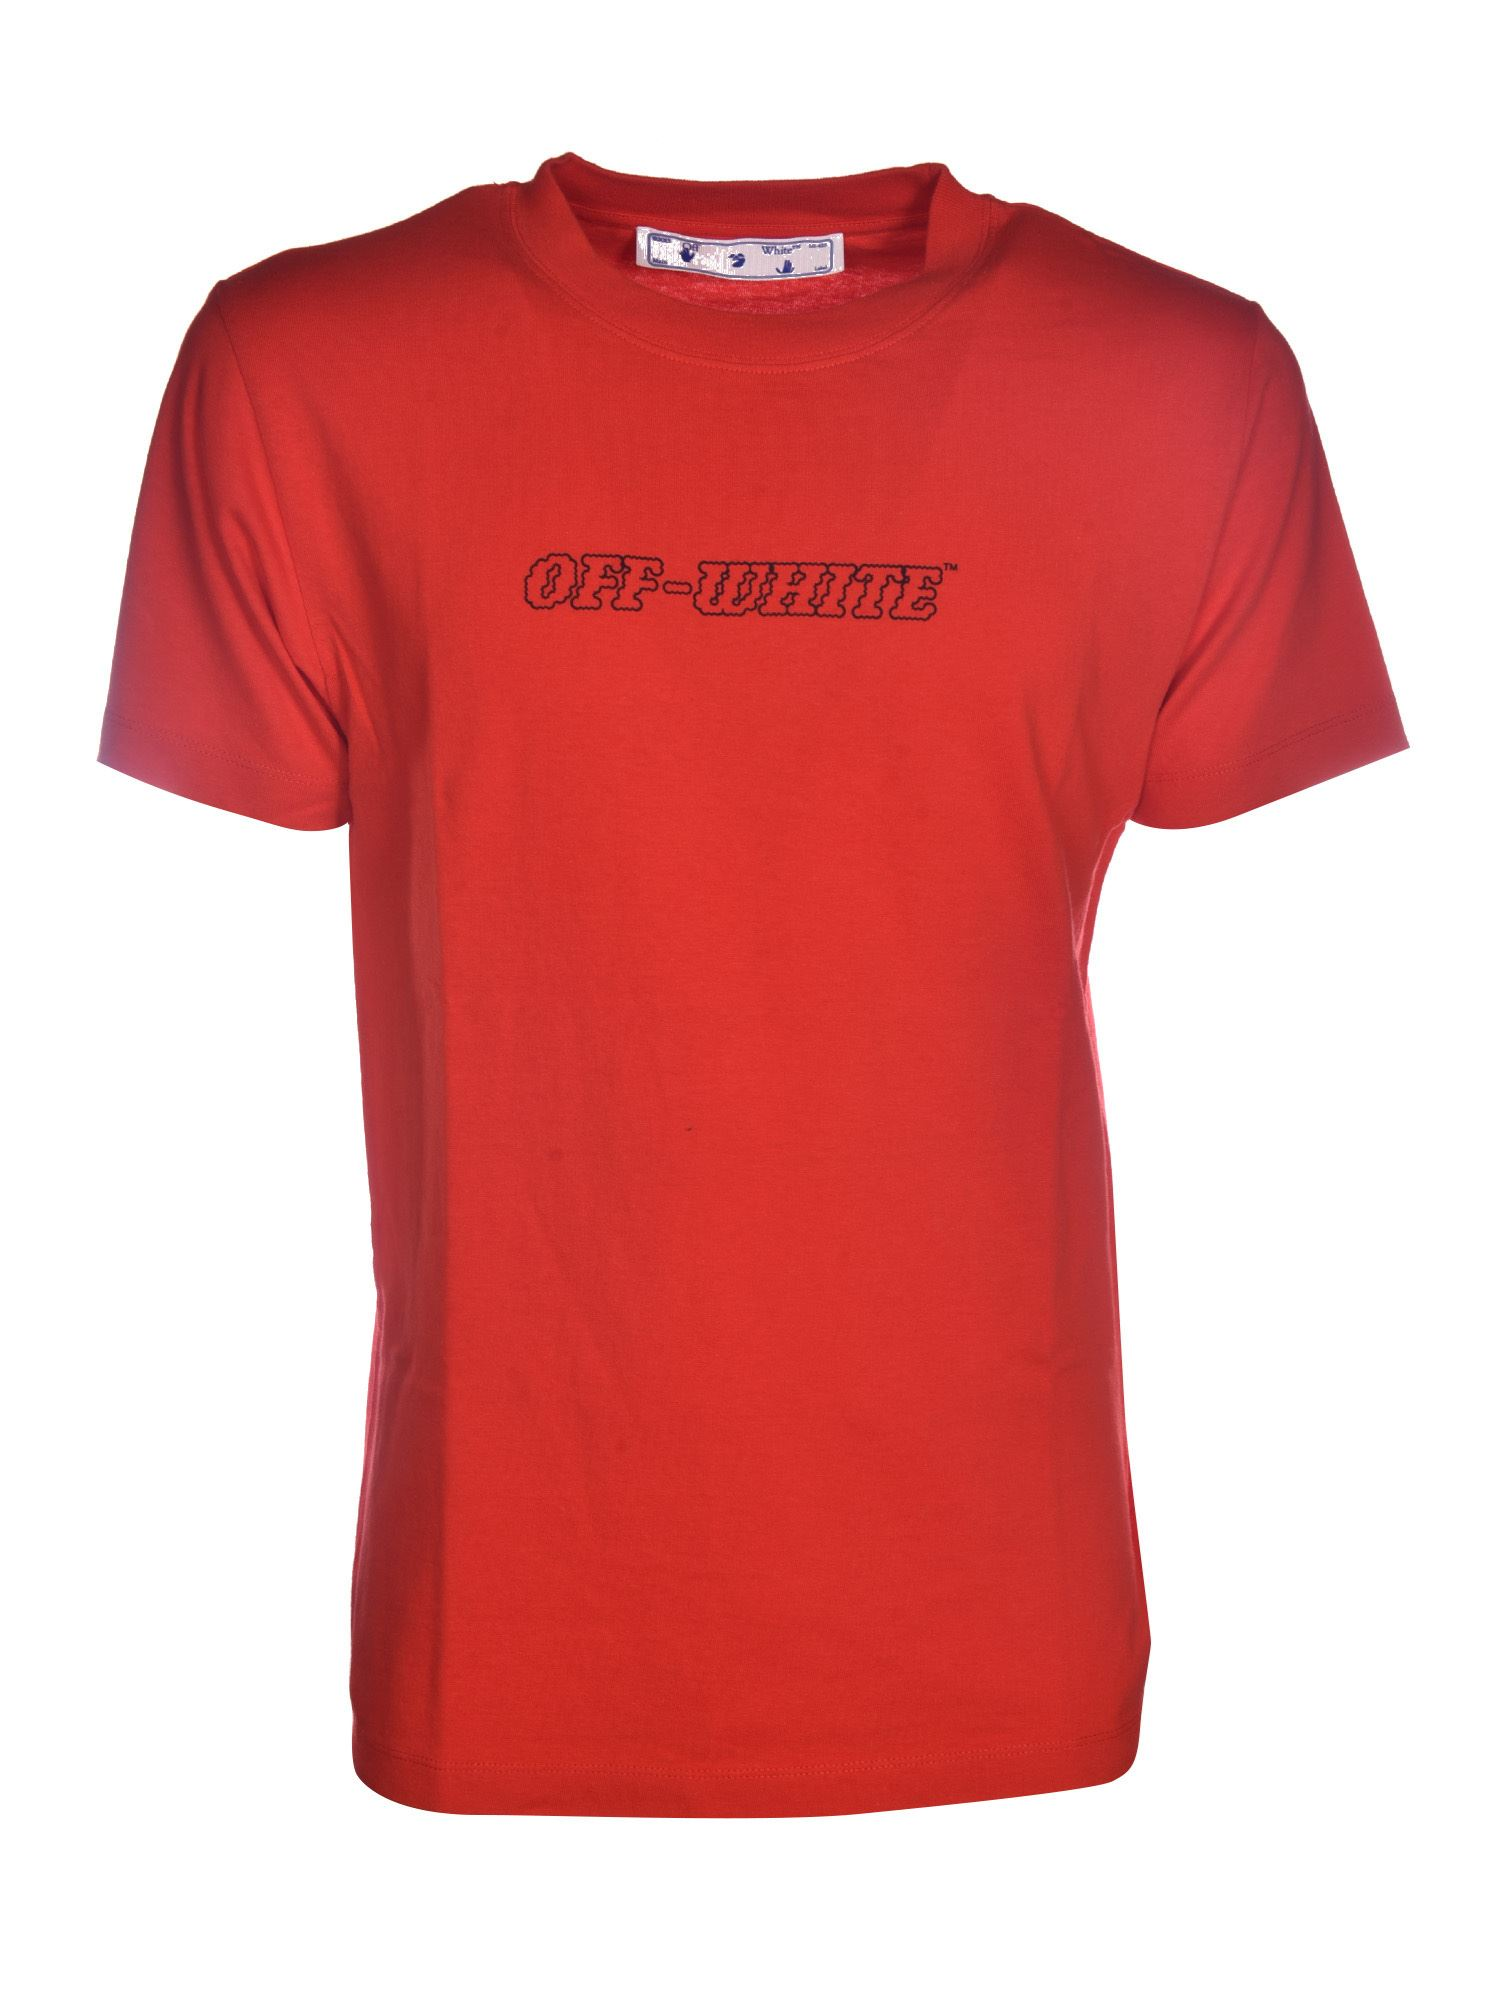 Off-White PASCAL T-SHIRT IN RED